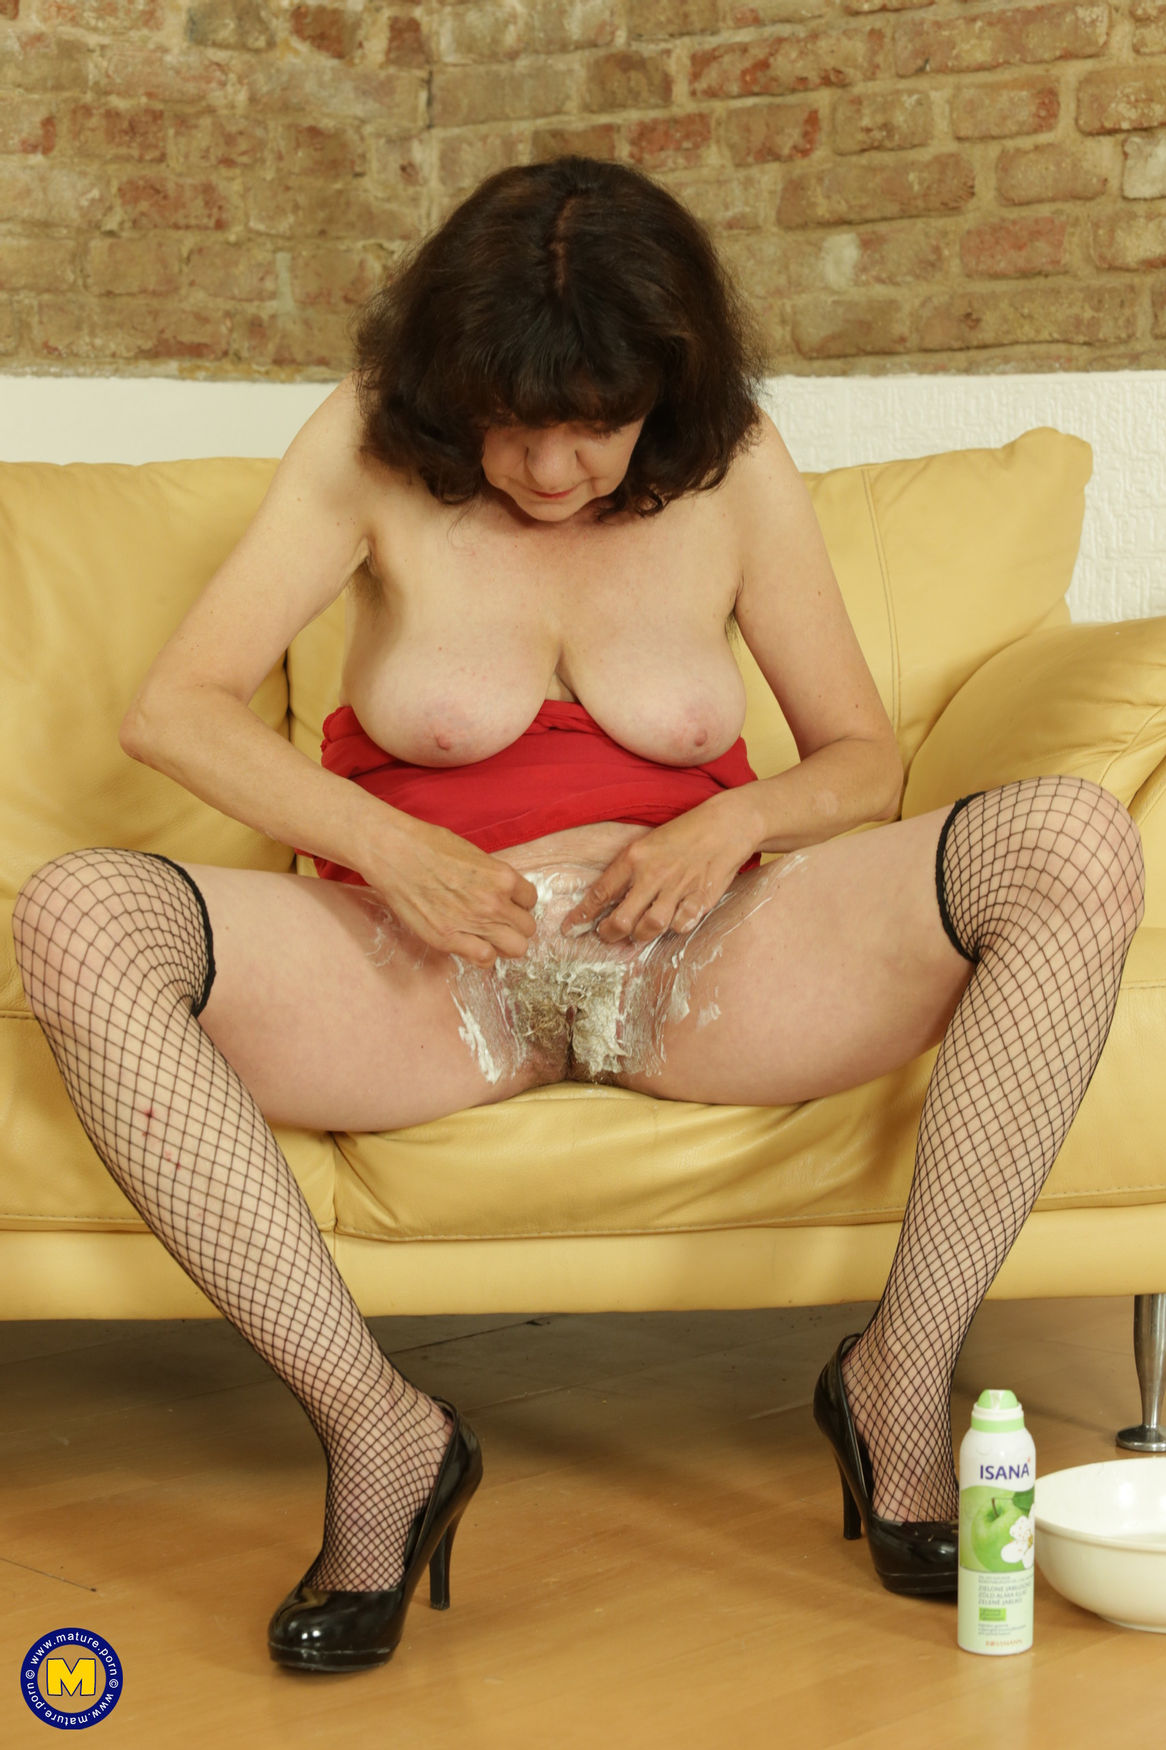 Horny mature lady shaving her hairy pussy in fishnet stockings and high heels